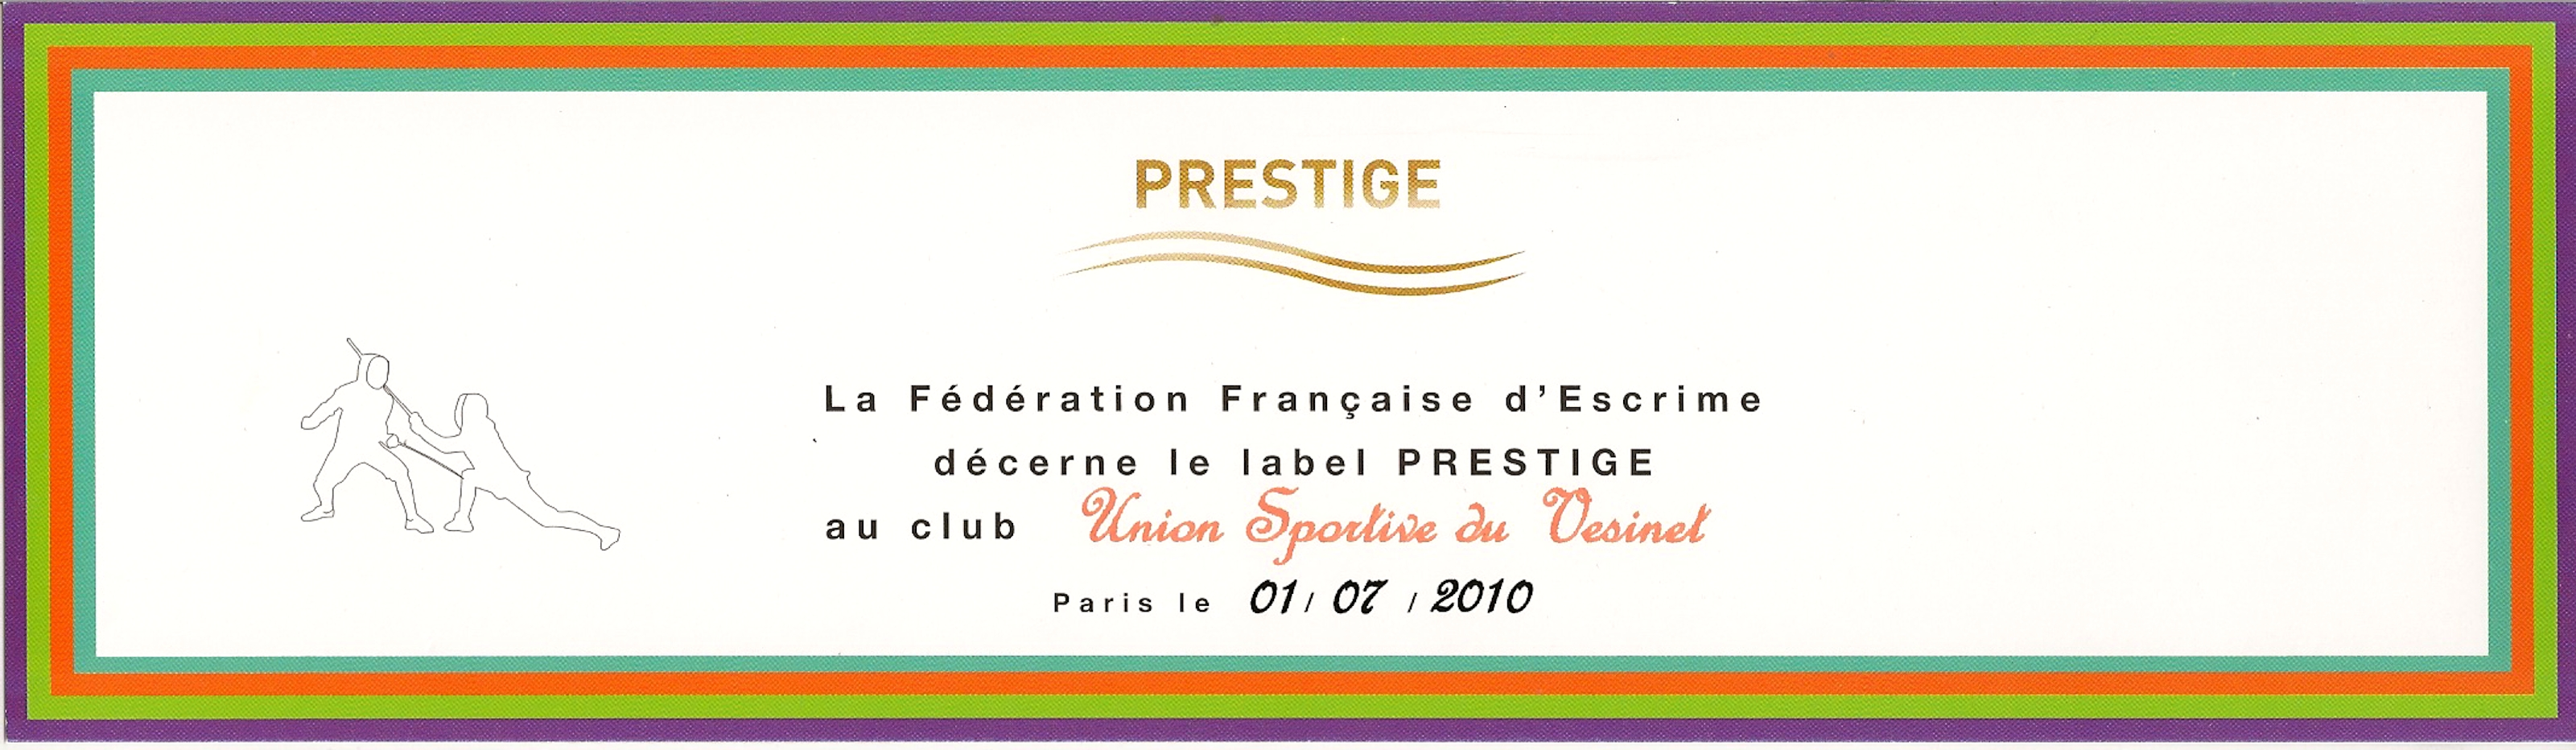 label prestige